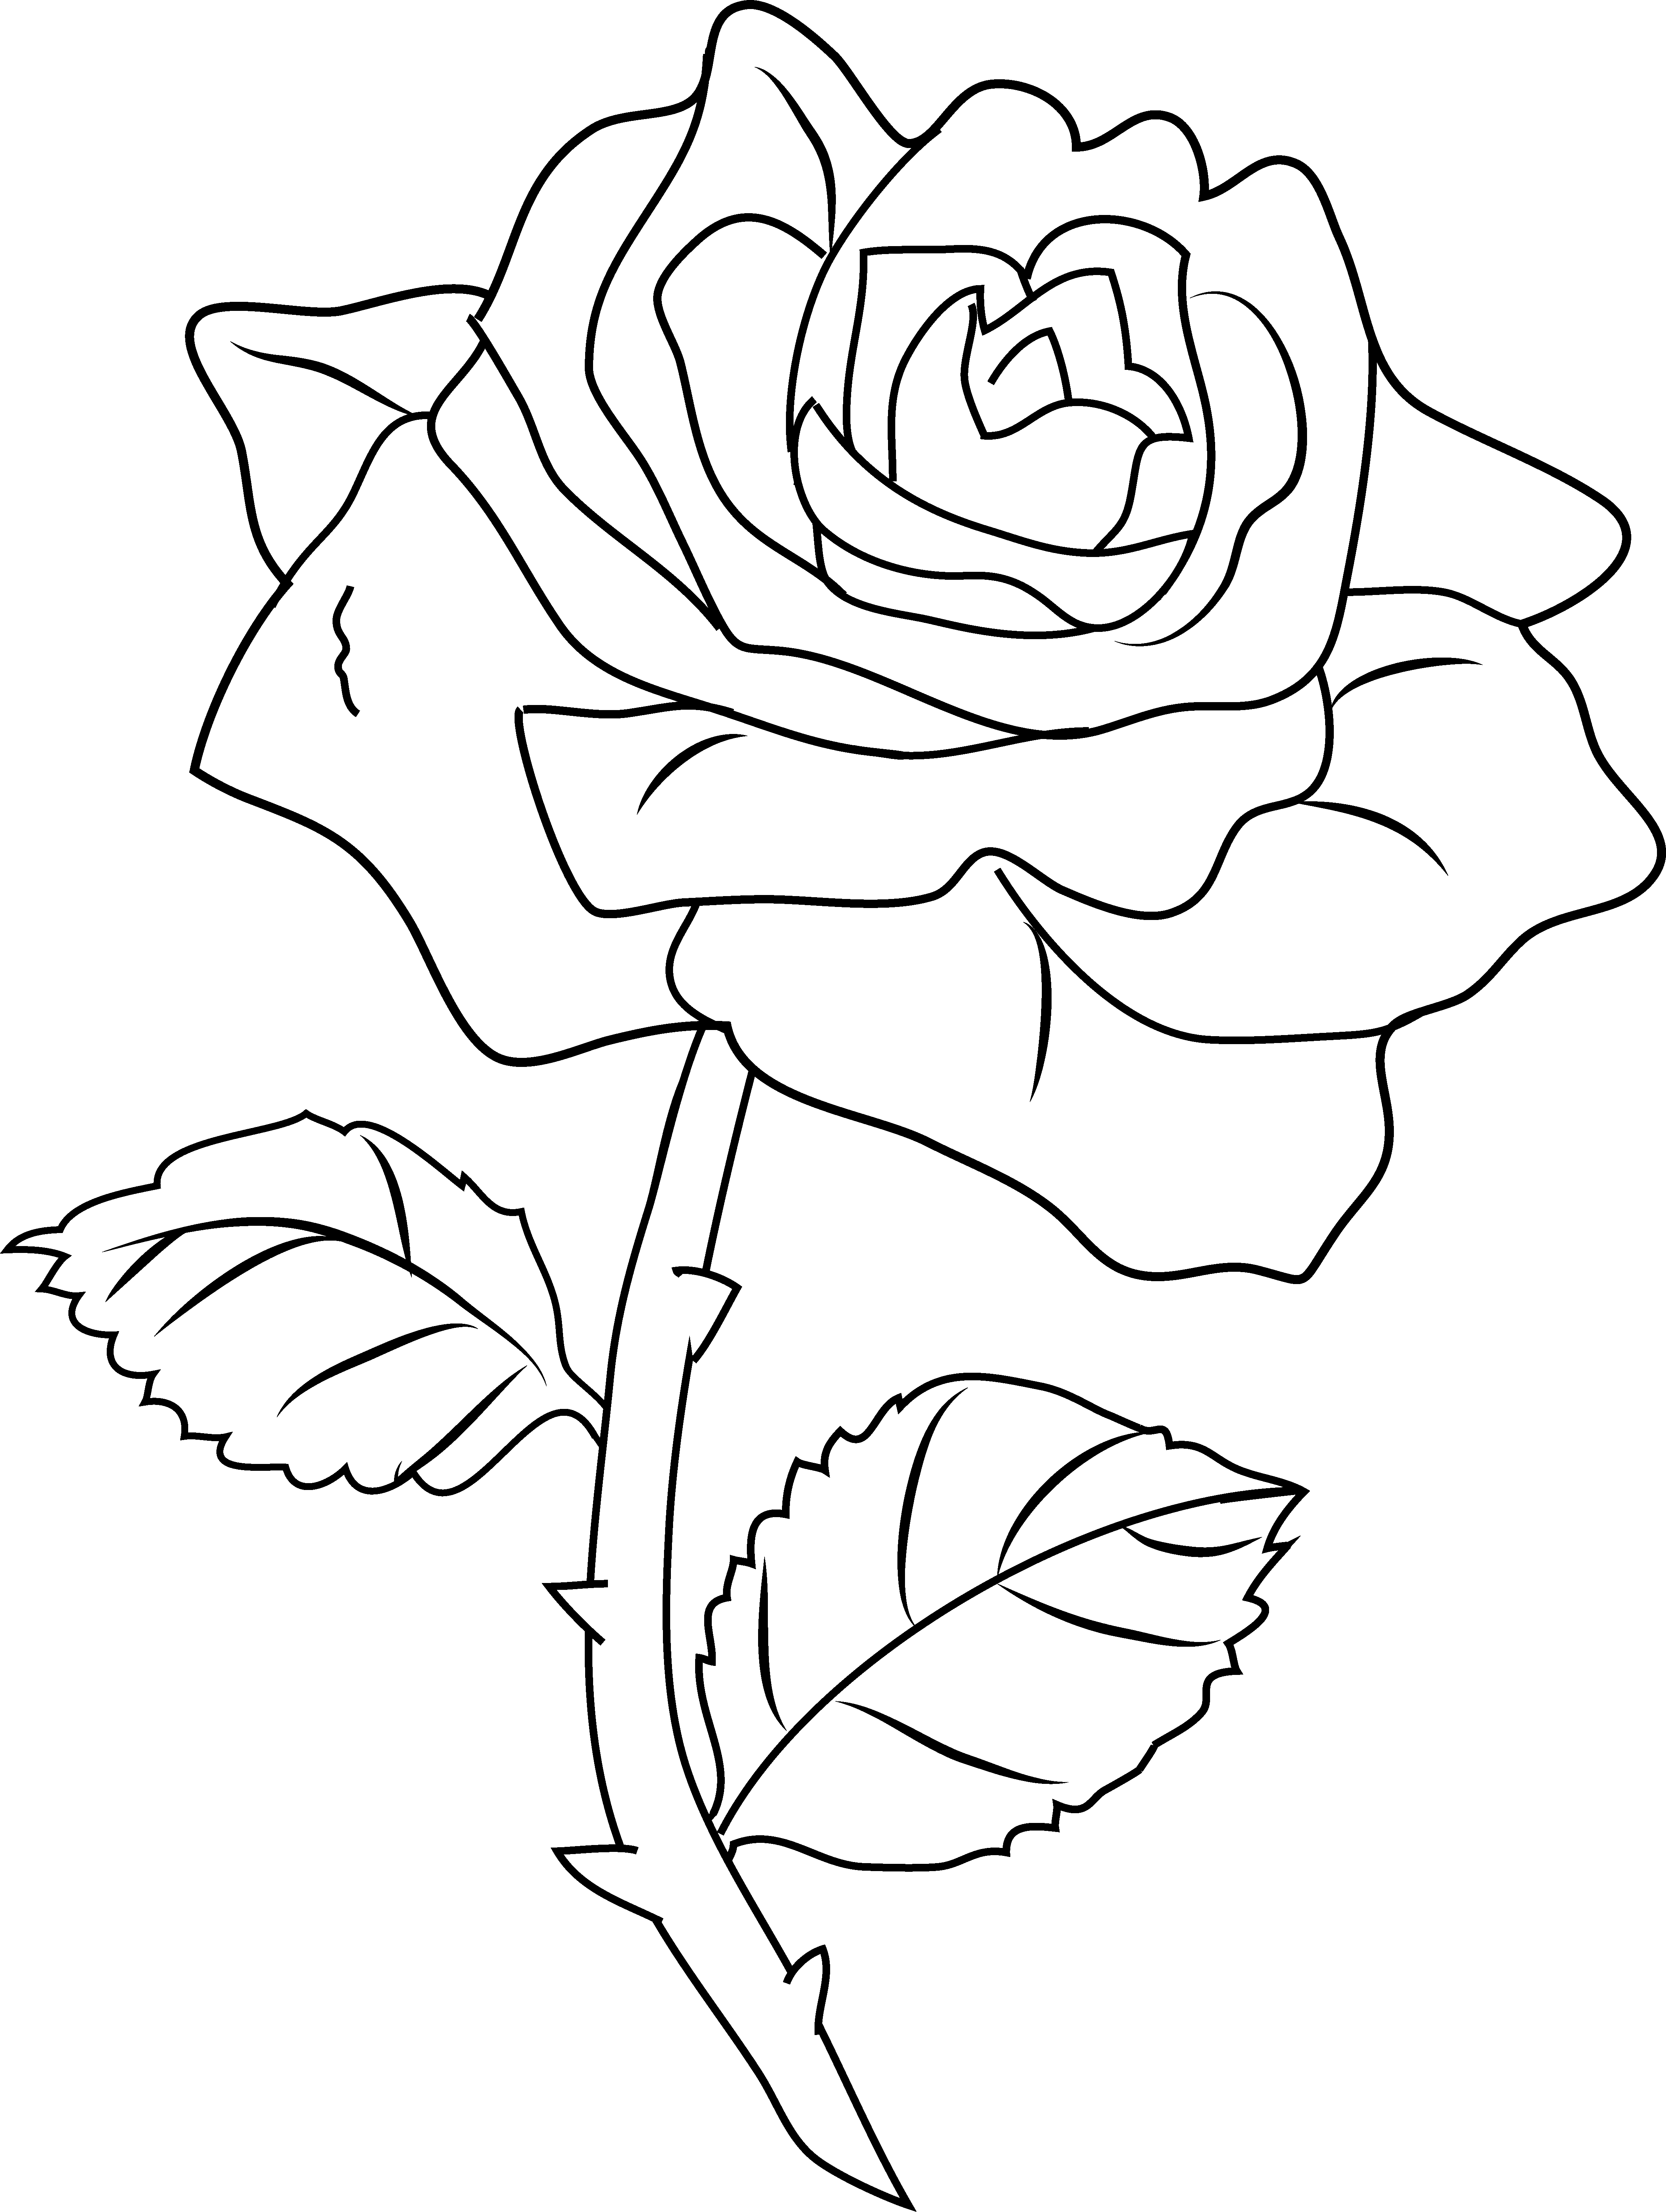 clip art coloring pages free valentine coloring pages made by creative clips clip art pages coloring